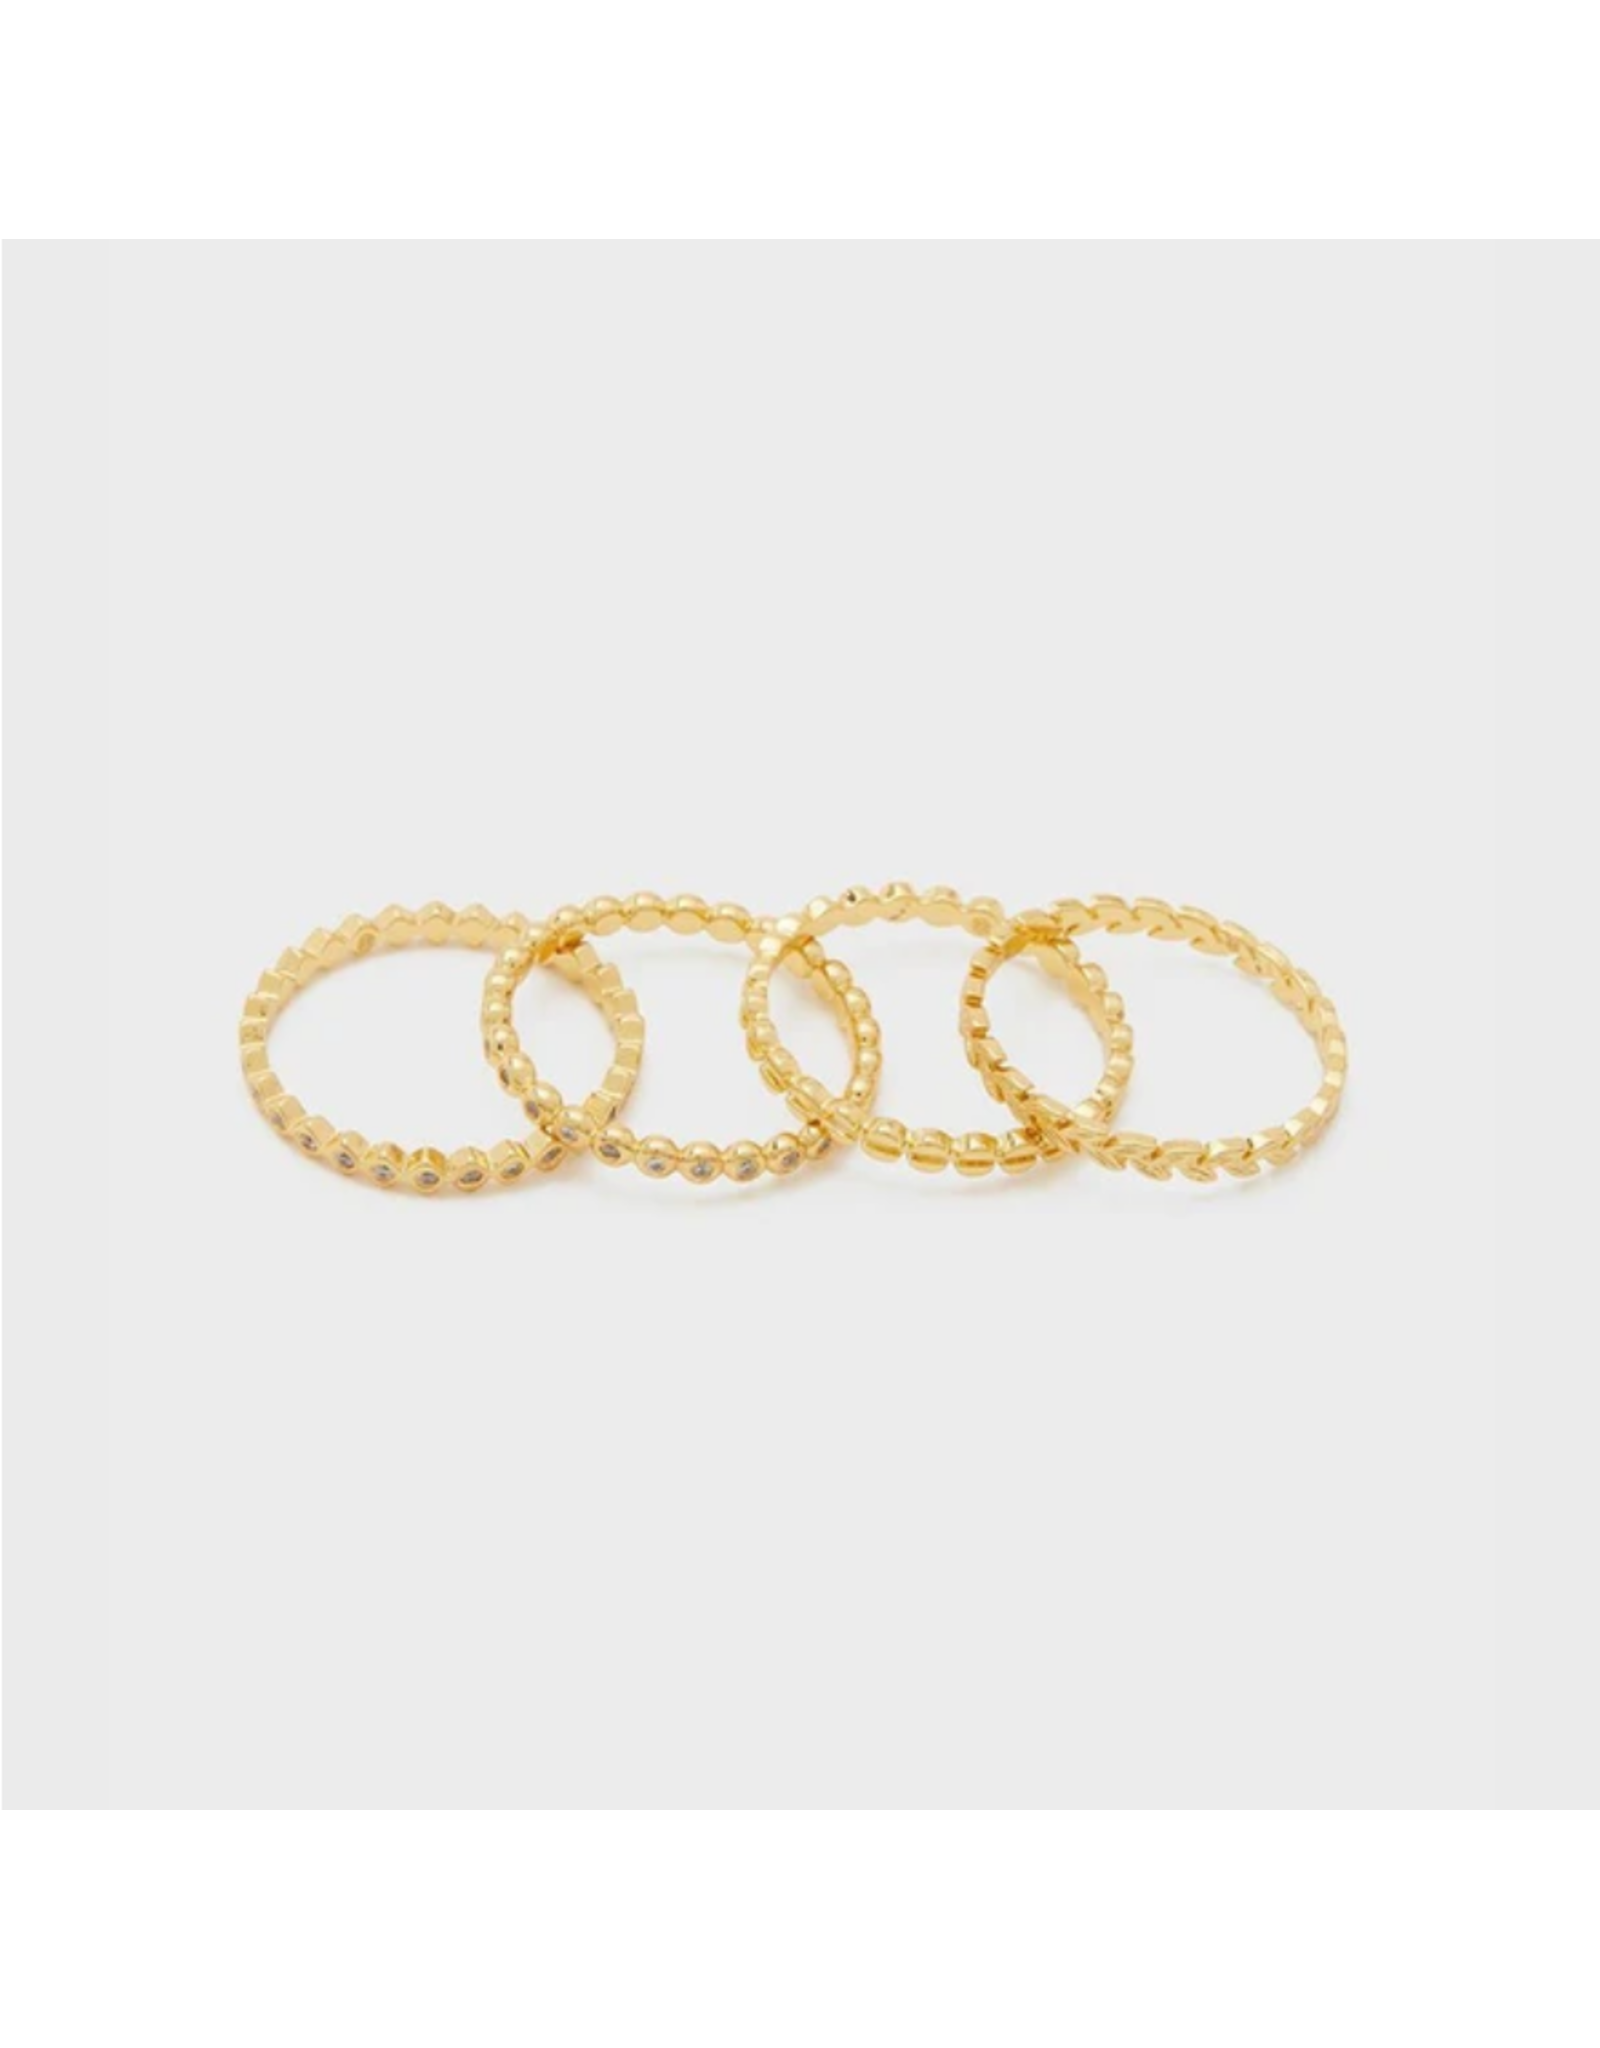 Mini Stackable Rings - gold/6